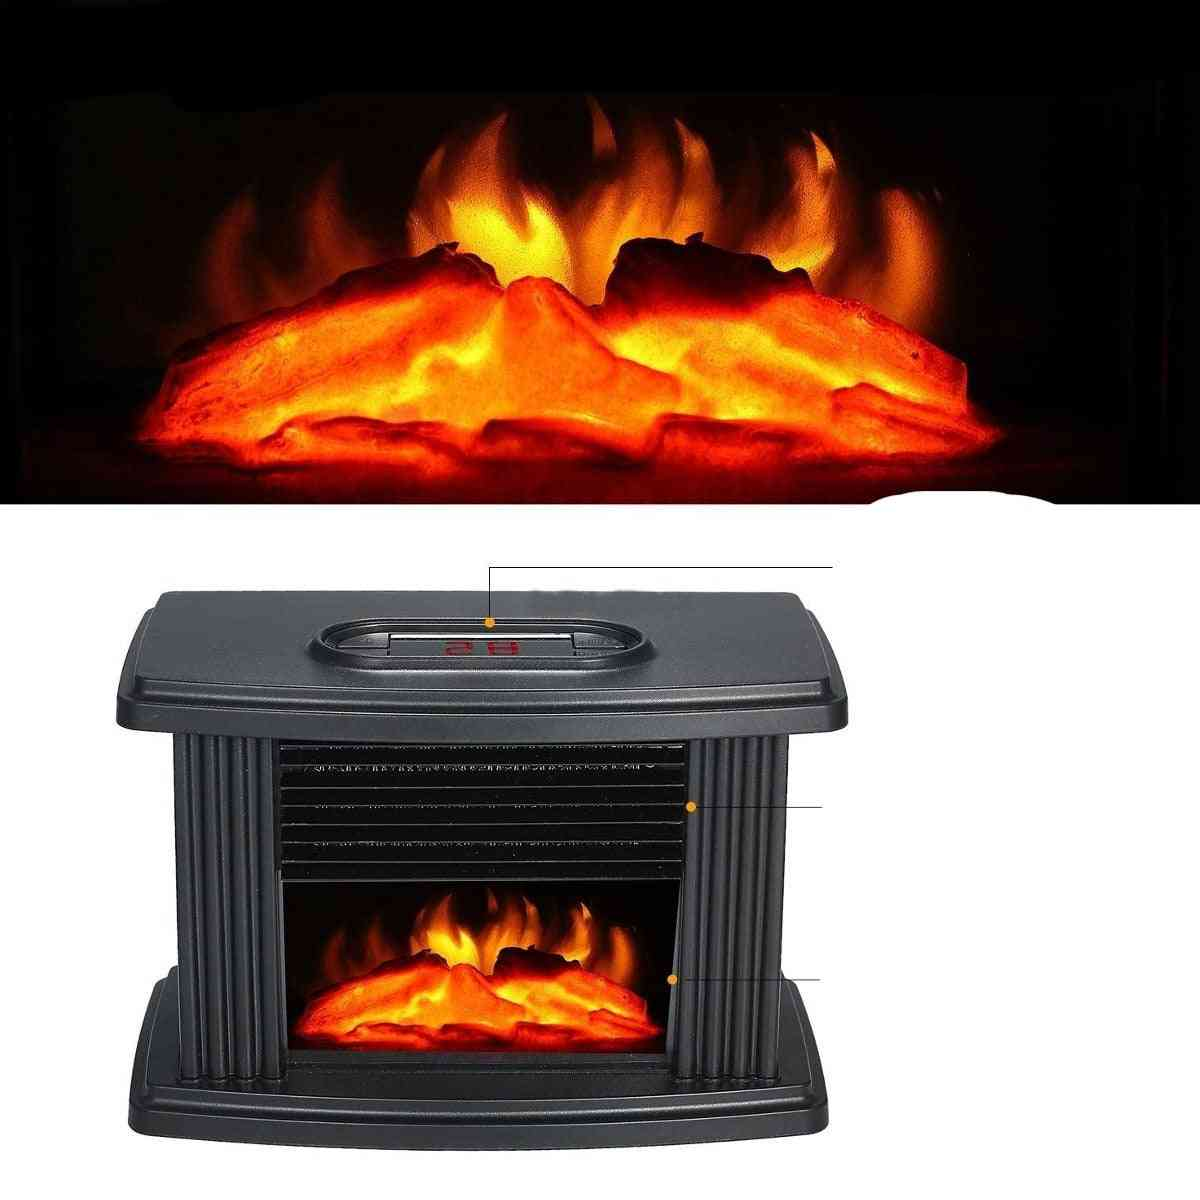 Portable Electric Fireplace Stove Heater Tabletop Indoor Space, 1000w Household Winter Heating Machine